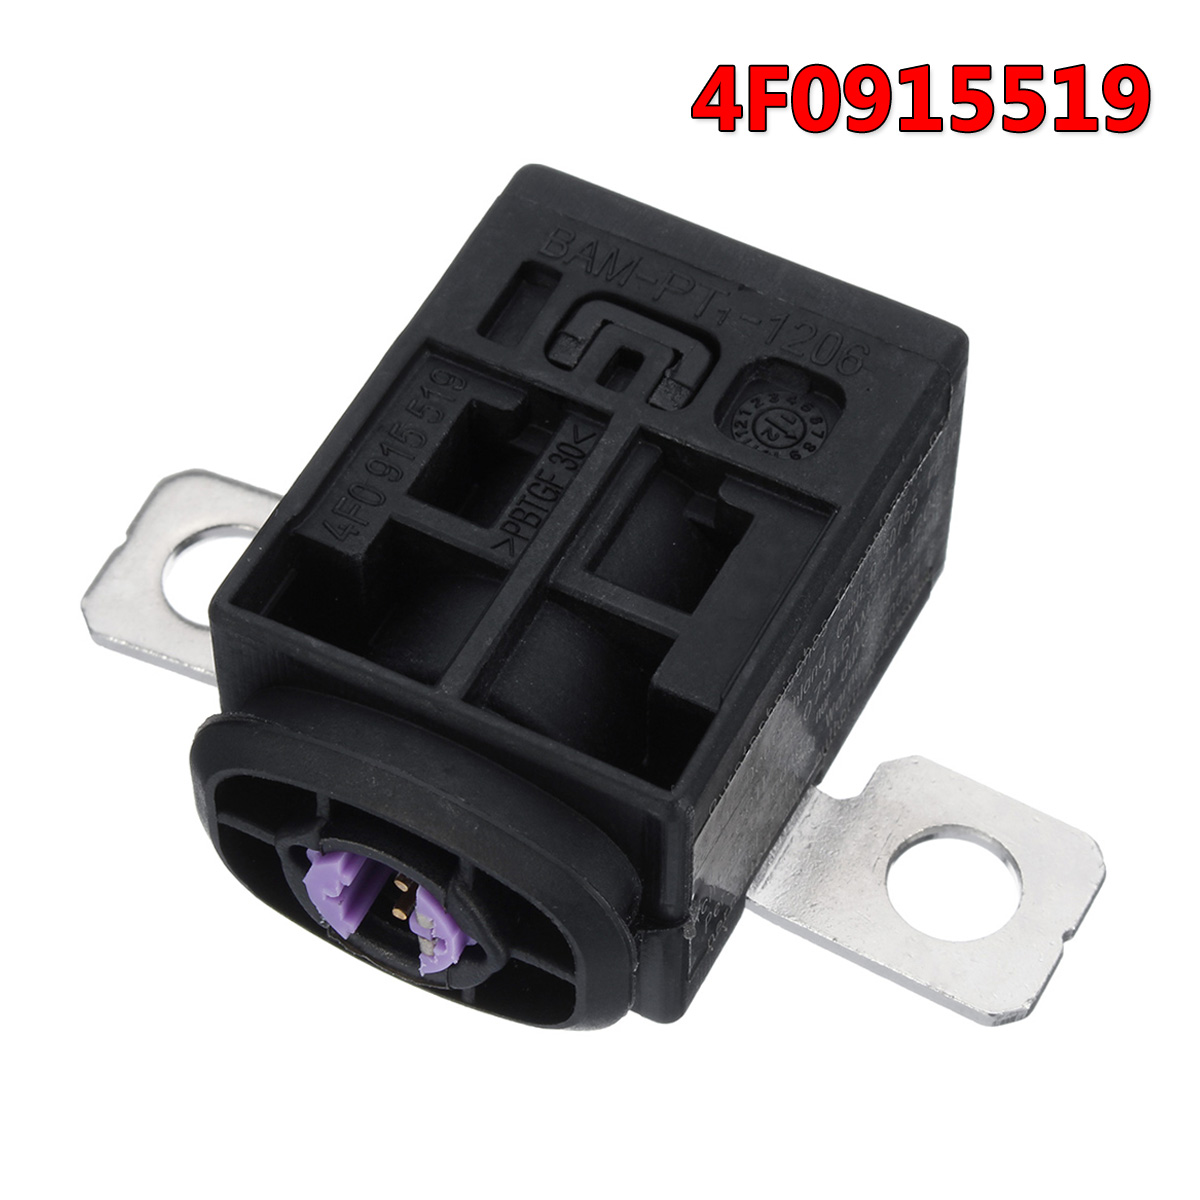 hight resolution of 4f0915519 battery fuse box cut off overload protection trip for audi q5 a5 a7 a6 vw skoda in fuses from automobiles motorcycles on aliexpress com